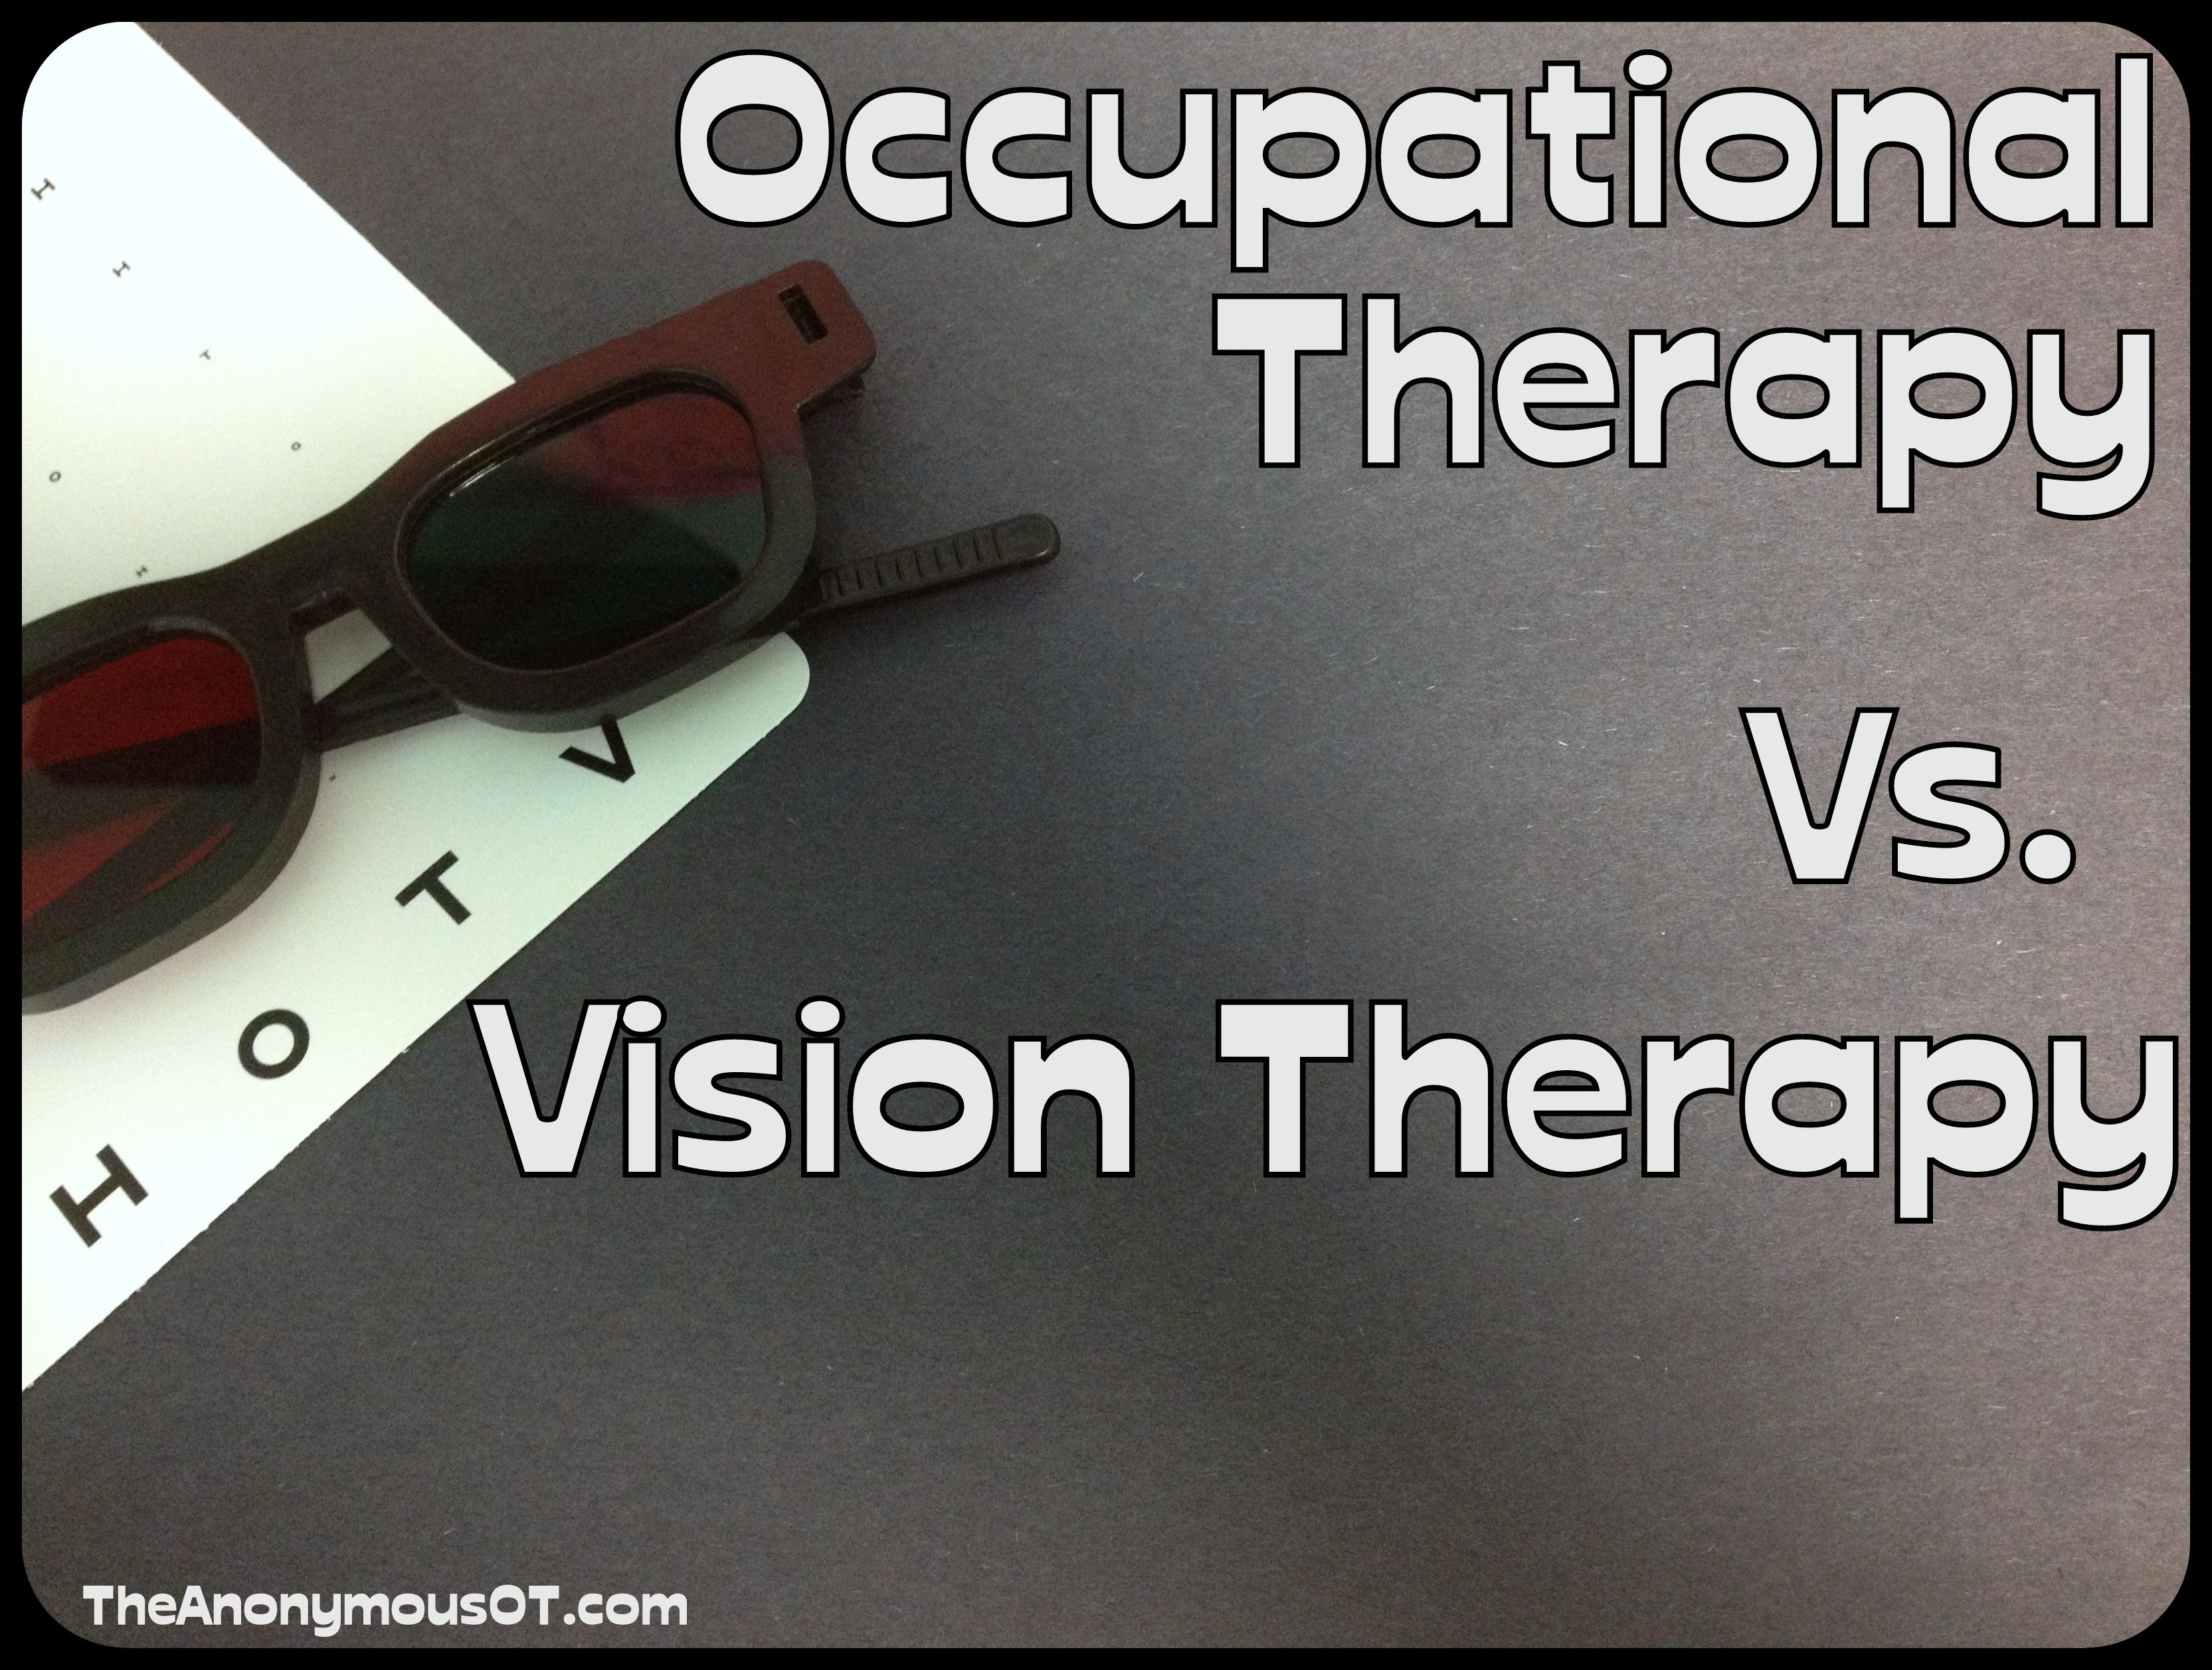 Occupational Therapy Vs Vision Therapy